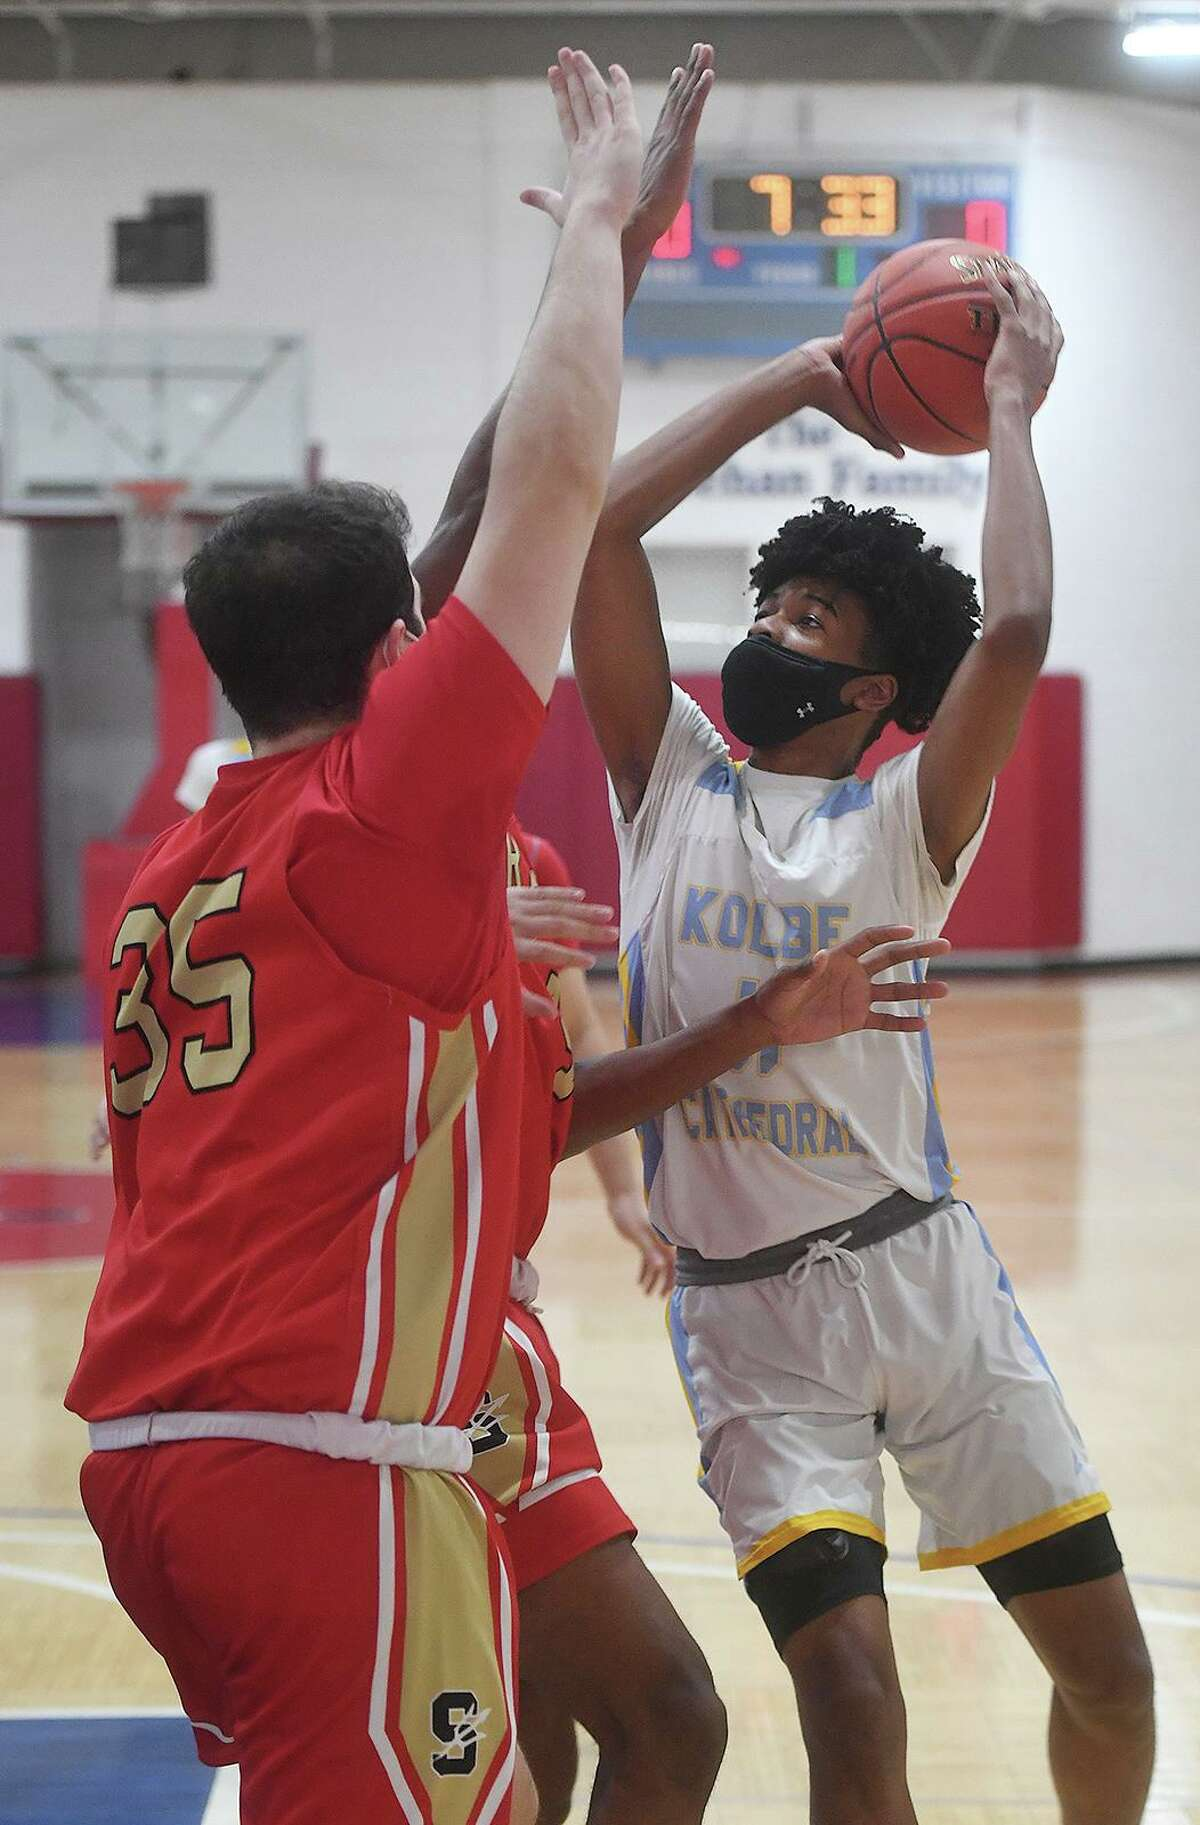 Kolbe Cathedral's Michael Olivencia drives to the basket against two Stratford defenders during the first half of the SWC tournament semifinals at the Cardinal Sheehan Center in Bridgeport, Conn. on Monday, March 22, 2021.